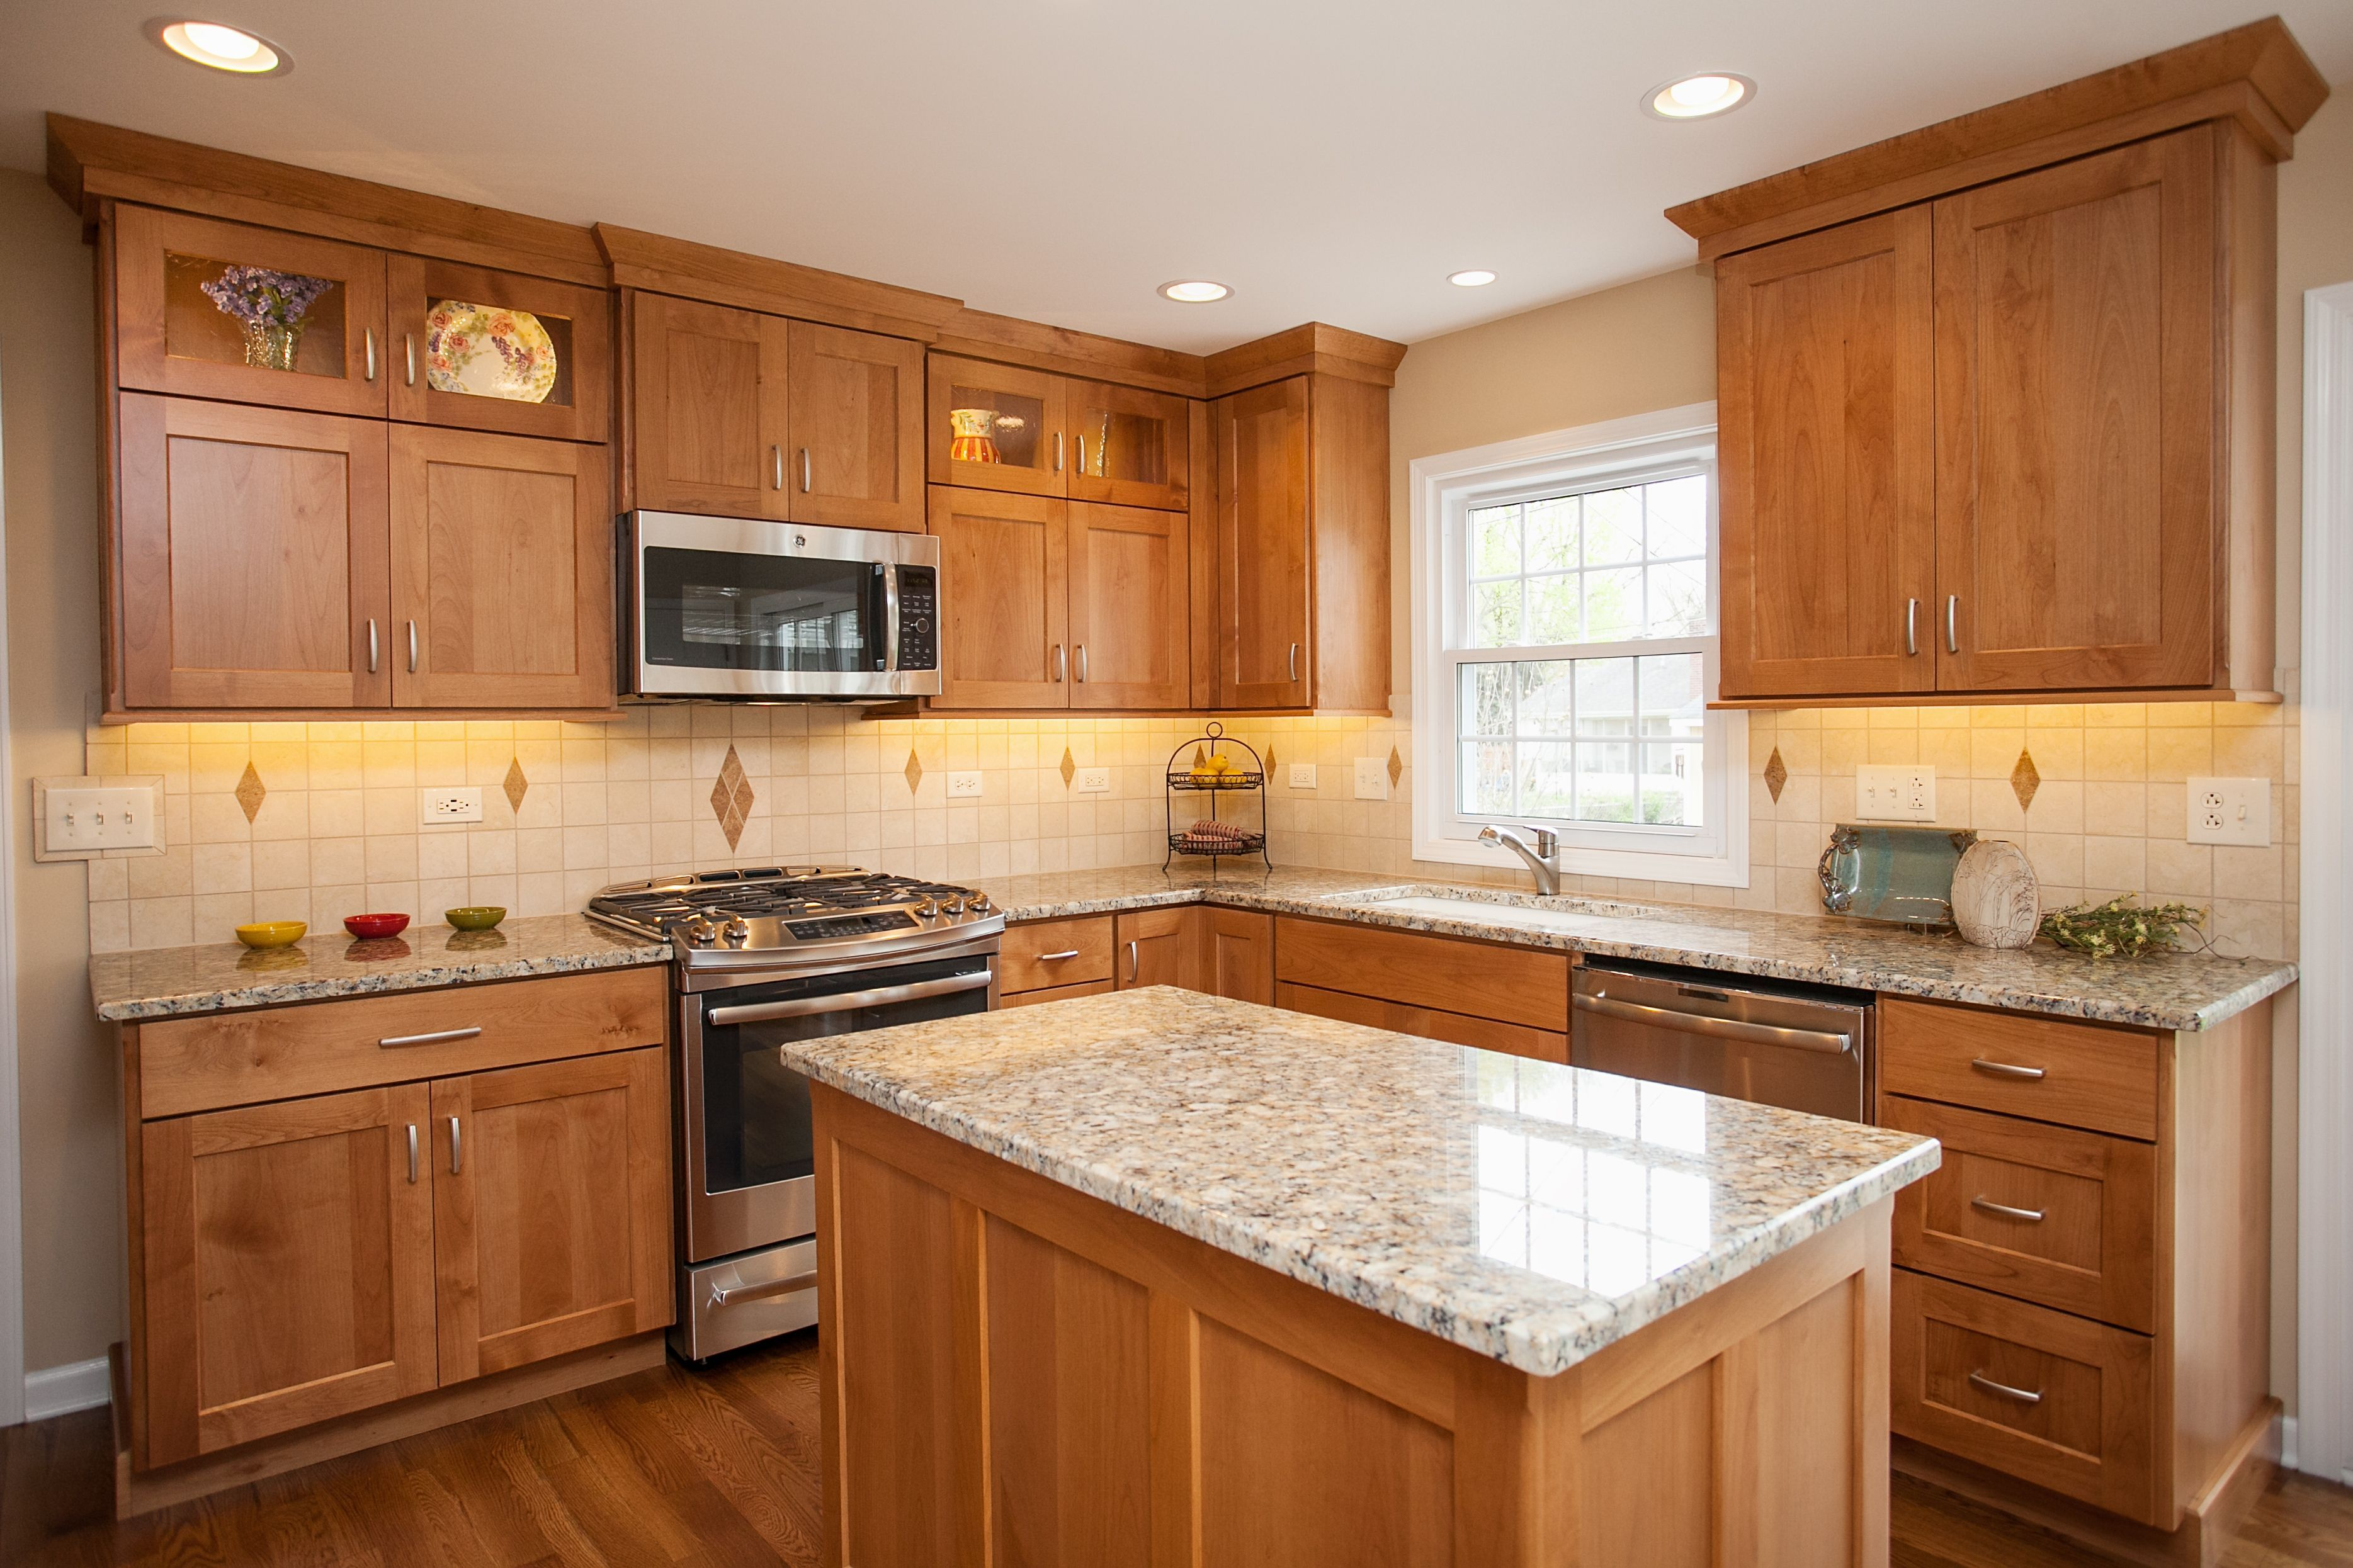 Light Oak Shaker Kitchen Cabinets A Kitchen In The Home Is A Place Which Must Be Hygienic And Cl New Kitchen Cabinets Kitchen Renovation Oak Kitchen Cabinets